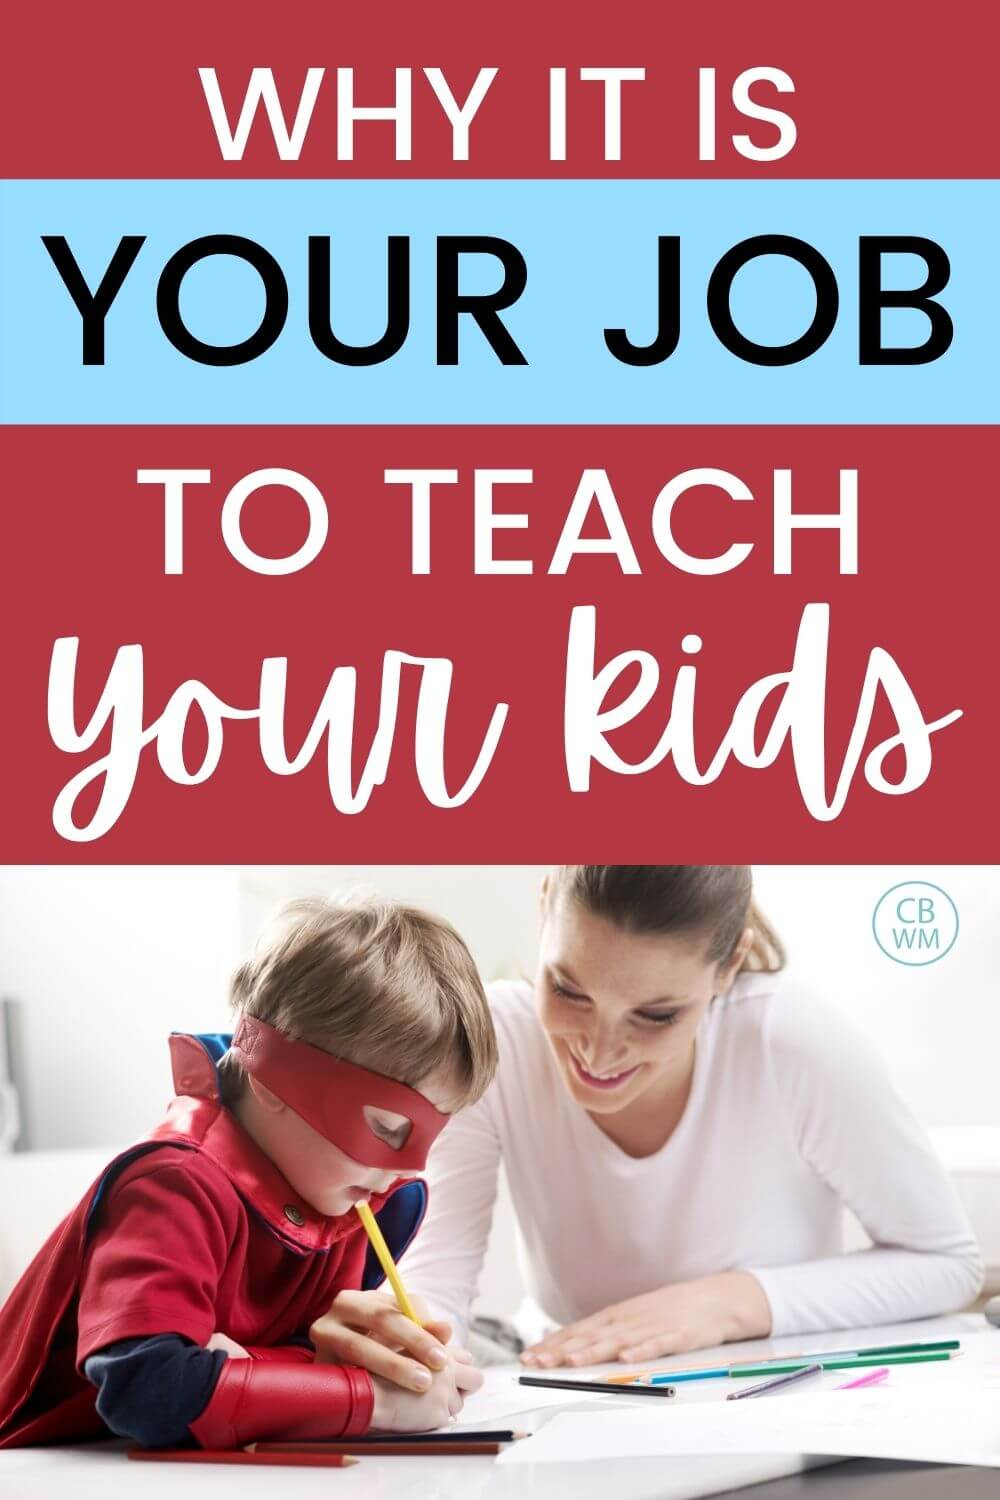 It is your job to teach your kids